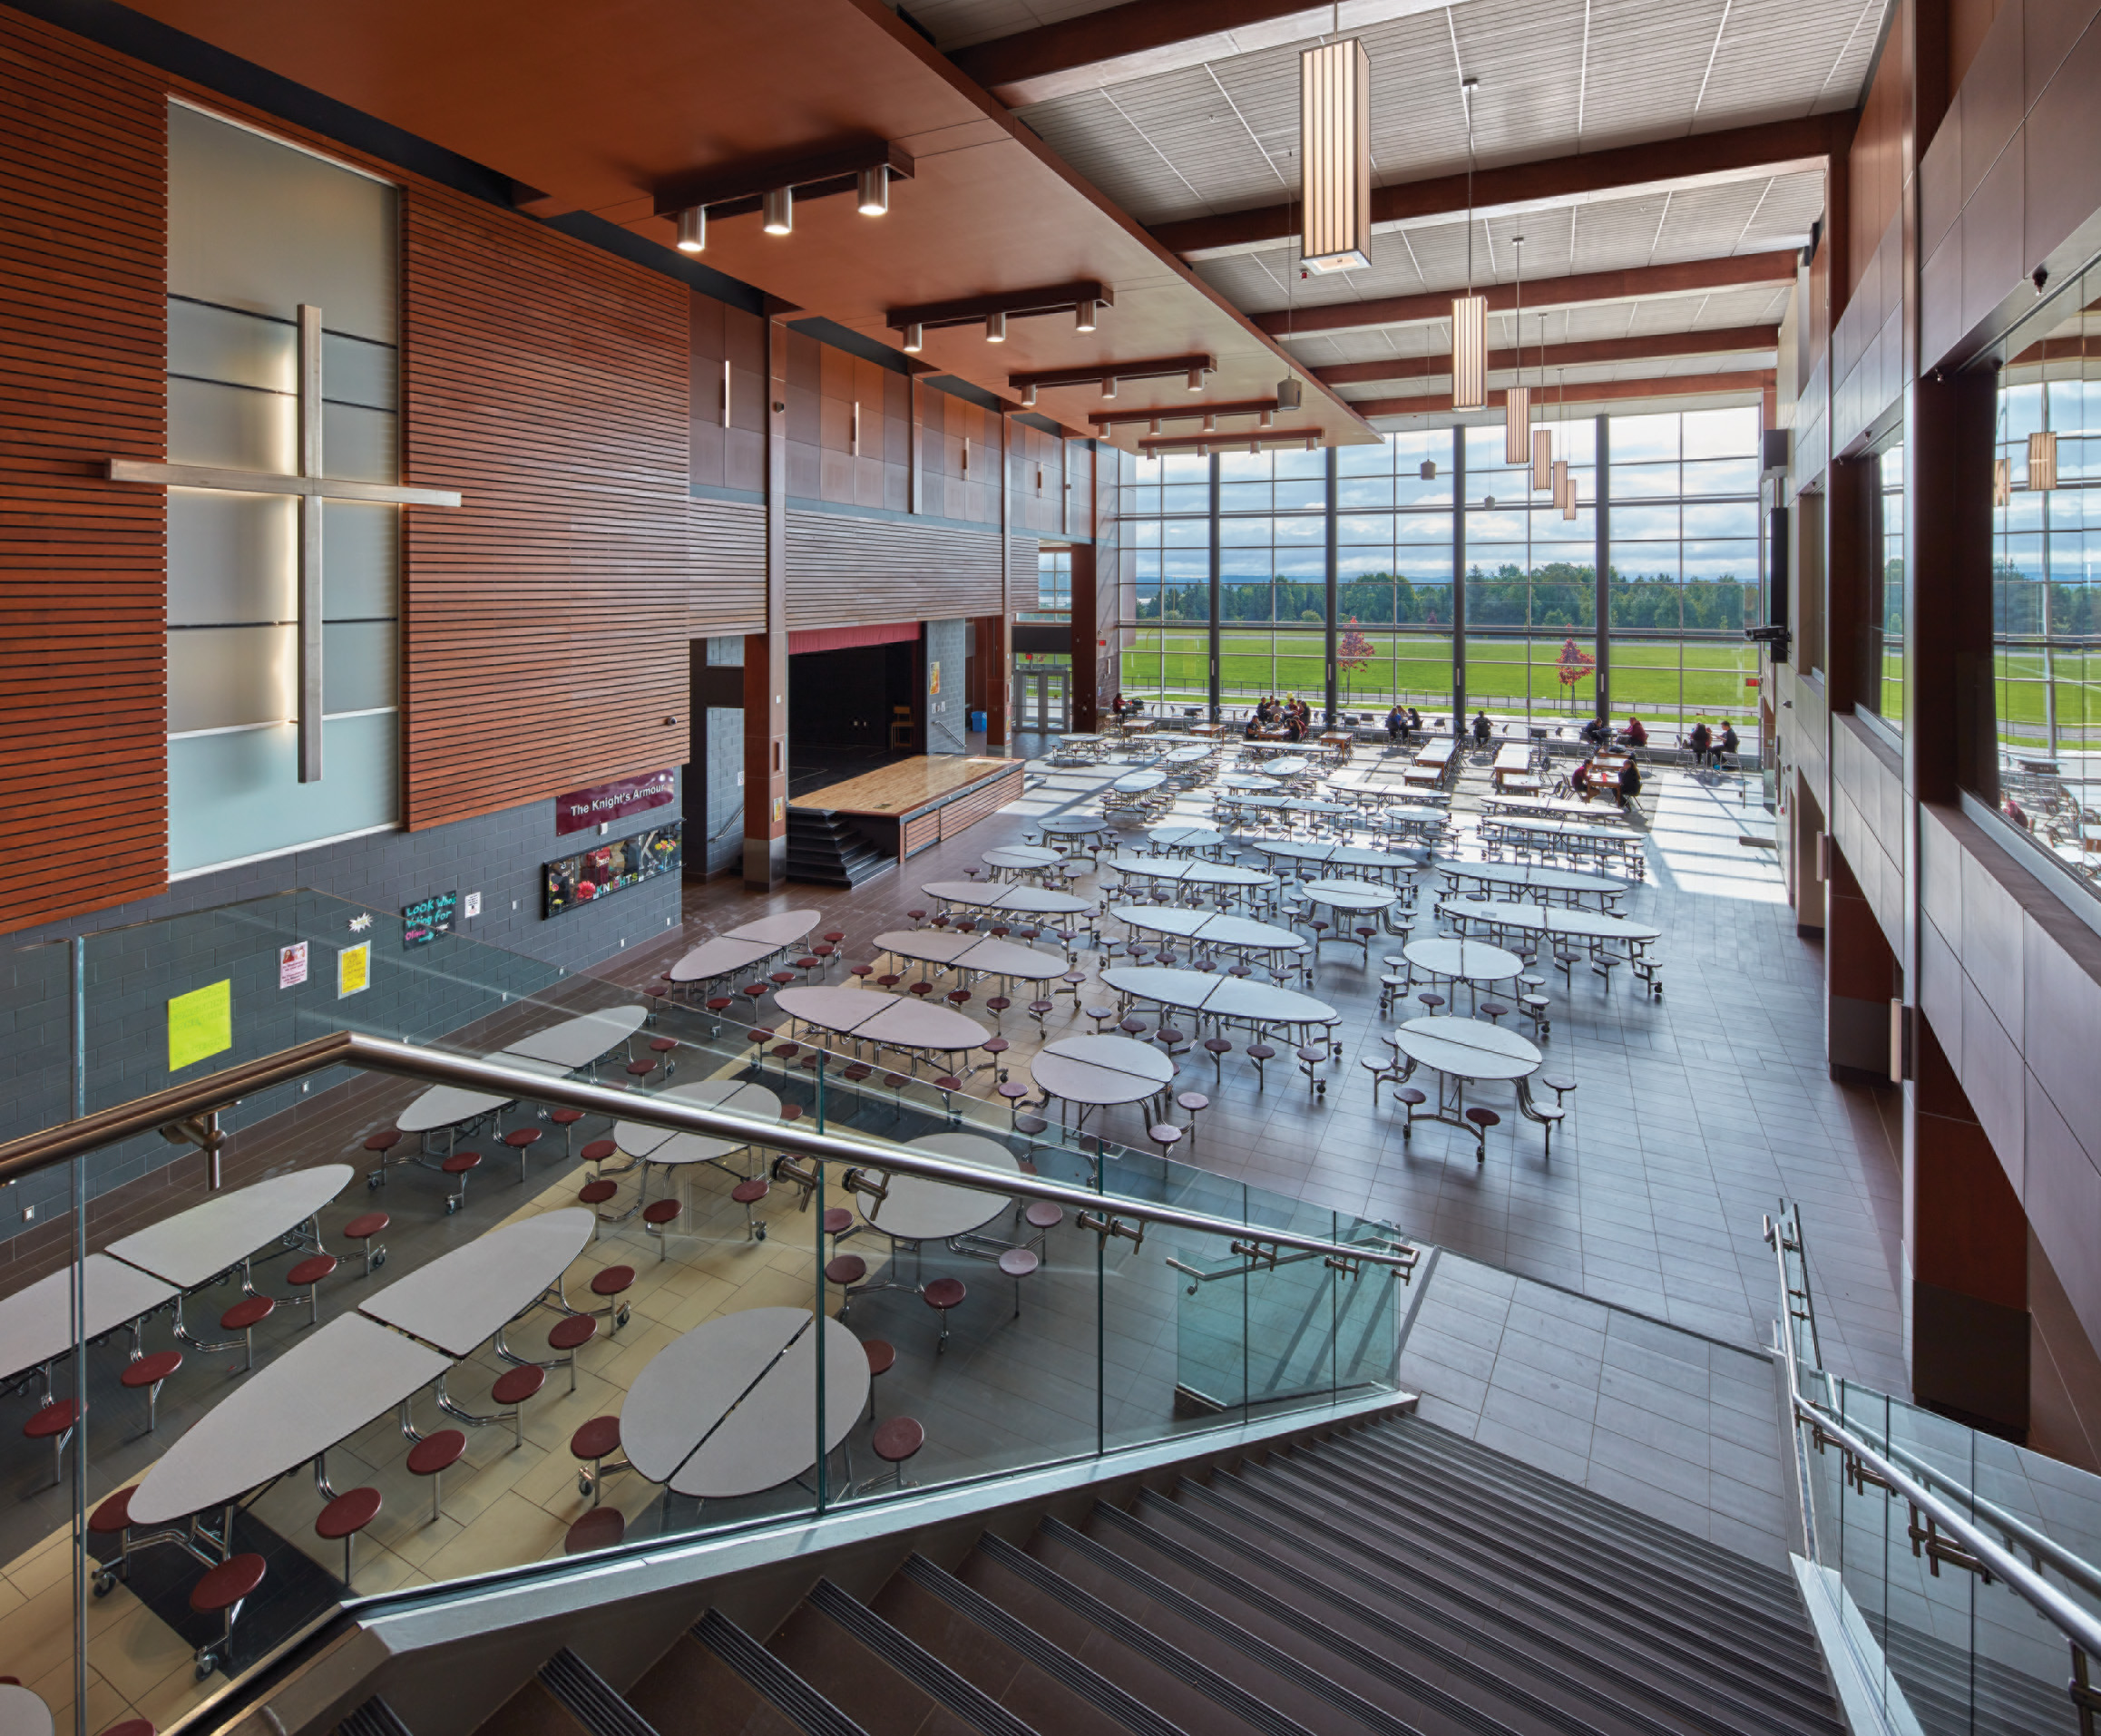 View of Cafeteria from stairs with back lit cross, stage and wood slat wall on left and glazed wall looking out to green field